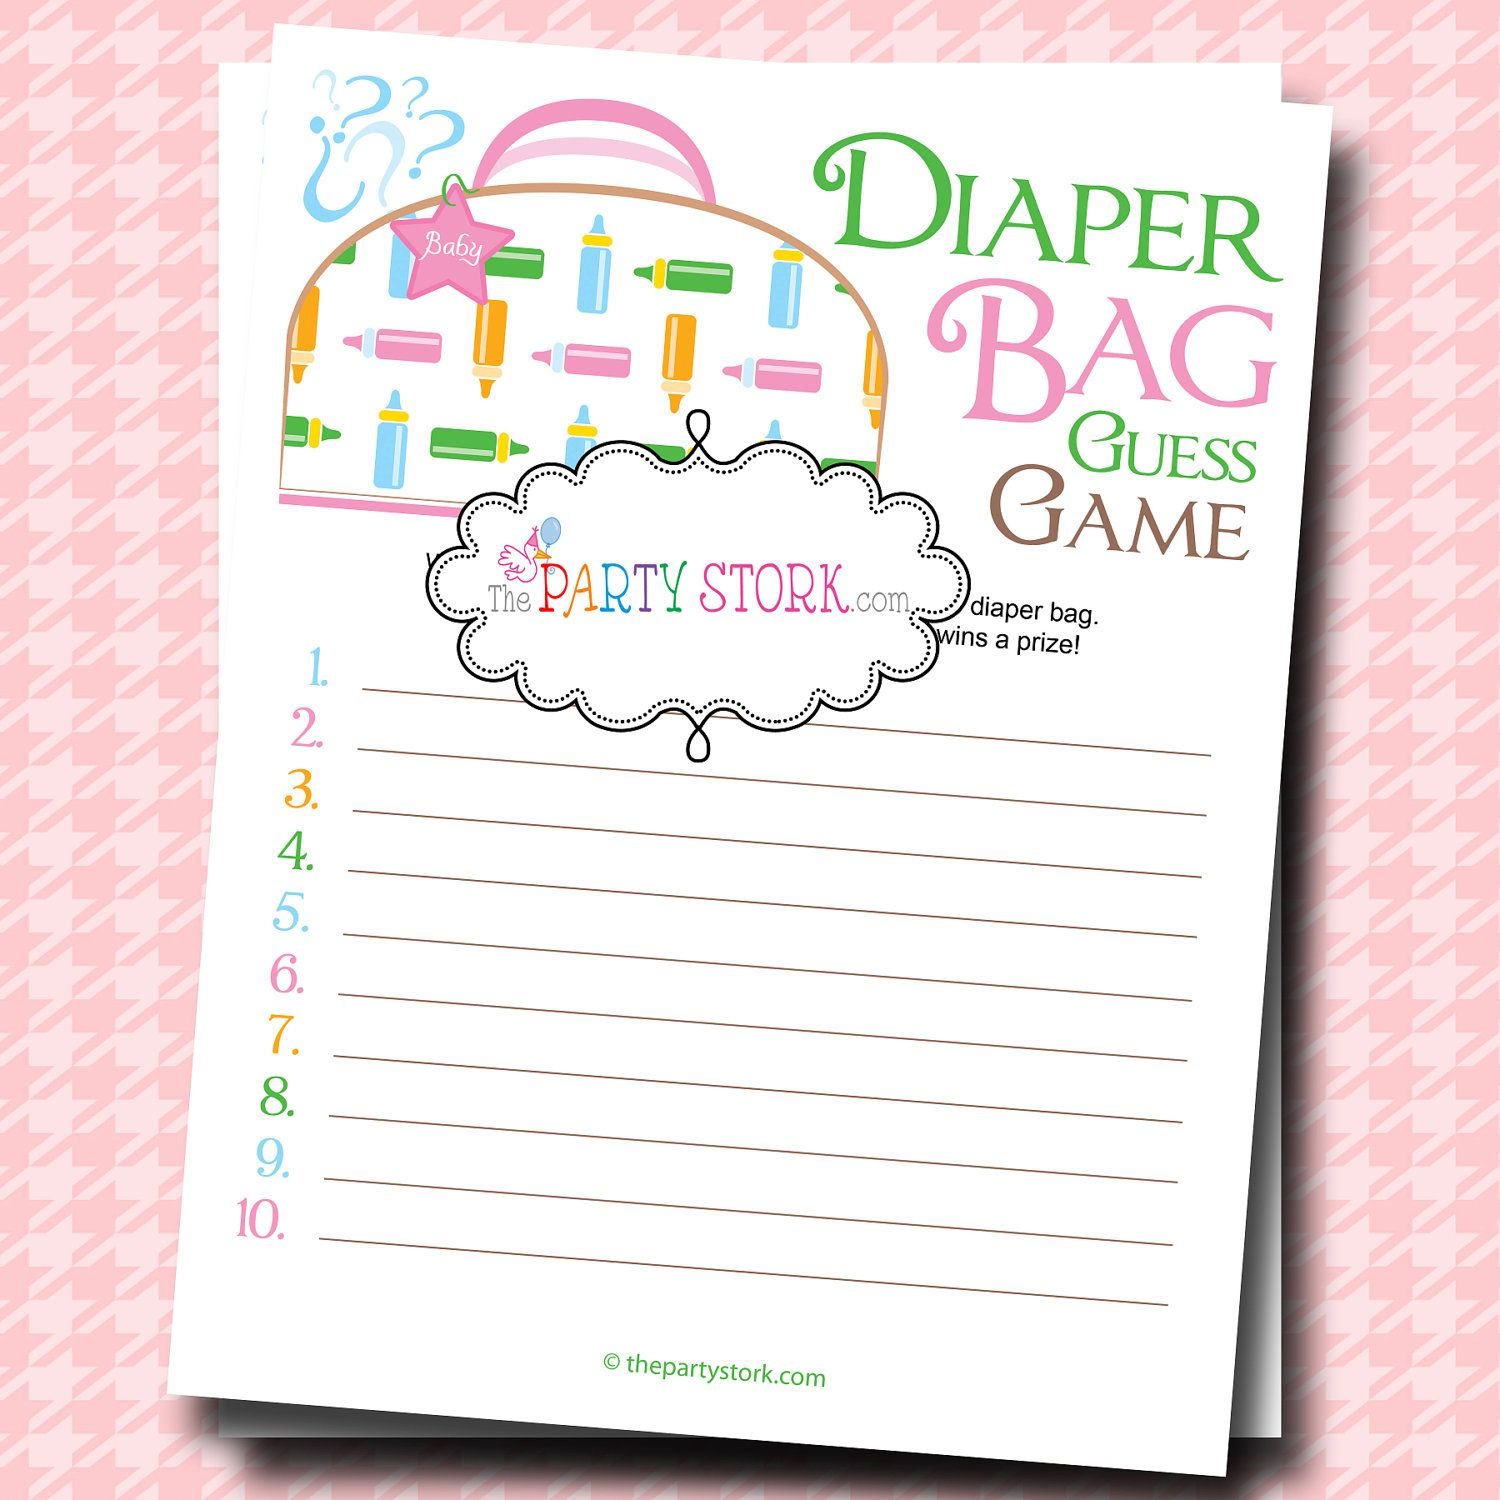 Baby Shower Games, Unique, Diaper Bag Guess Game, PRINTABLE